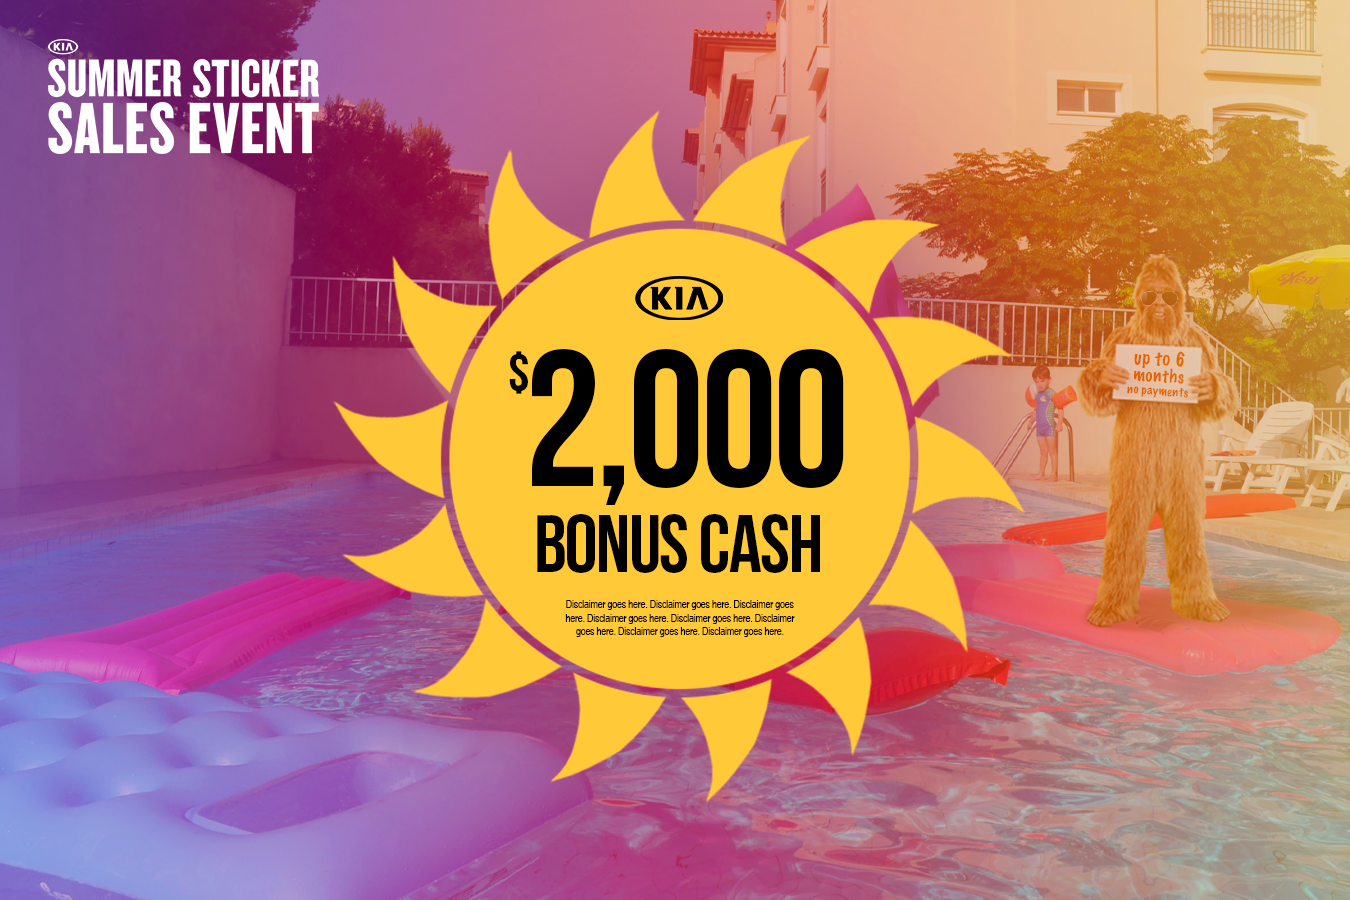 New Kia Offer of $2,000 Bonus Cash